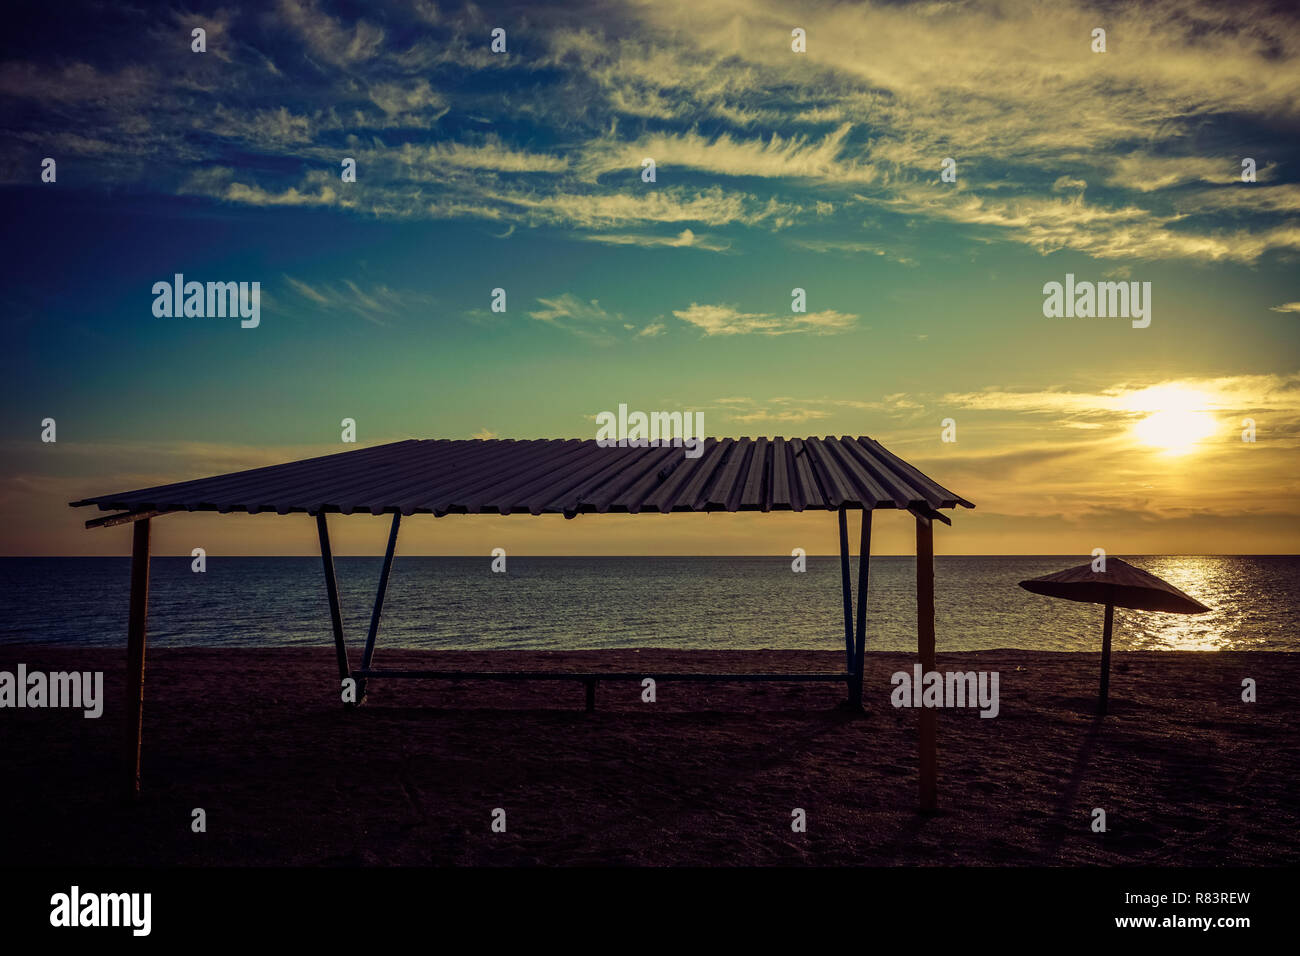 Canopy and old metal umbrella on sandy beach. Sunset sky with sun - Stock Image